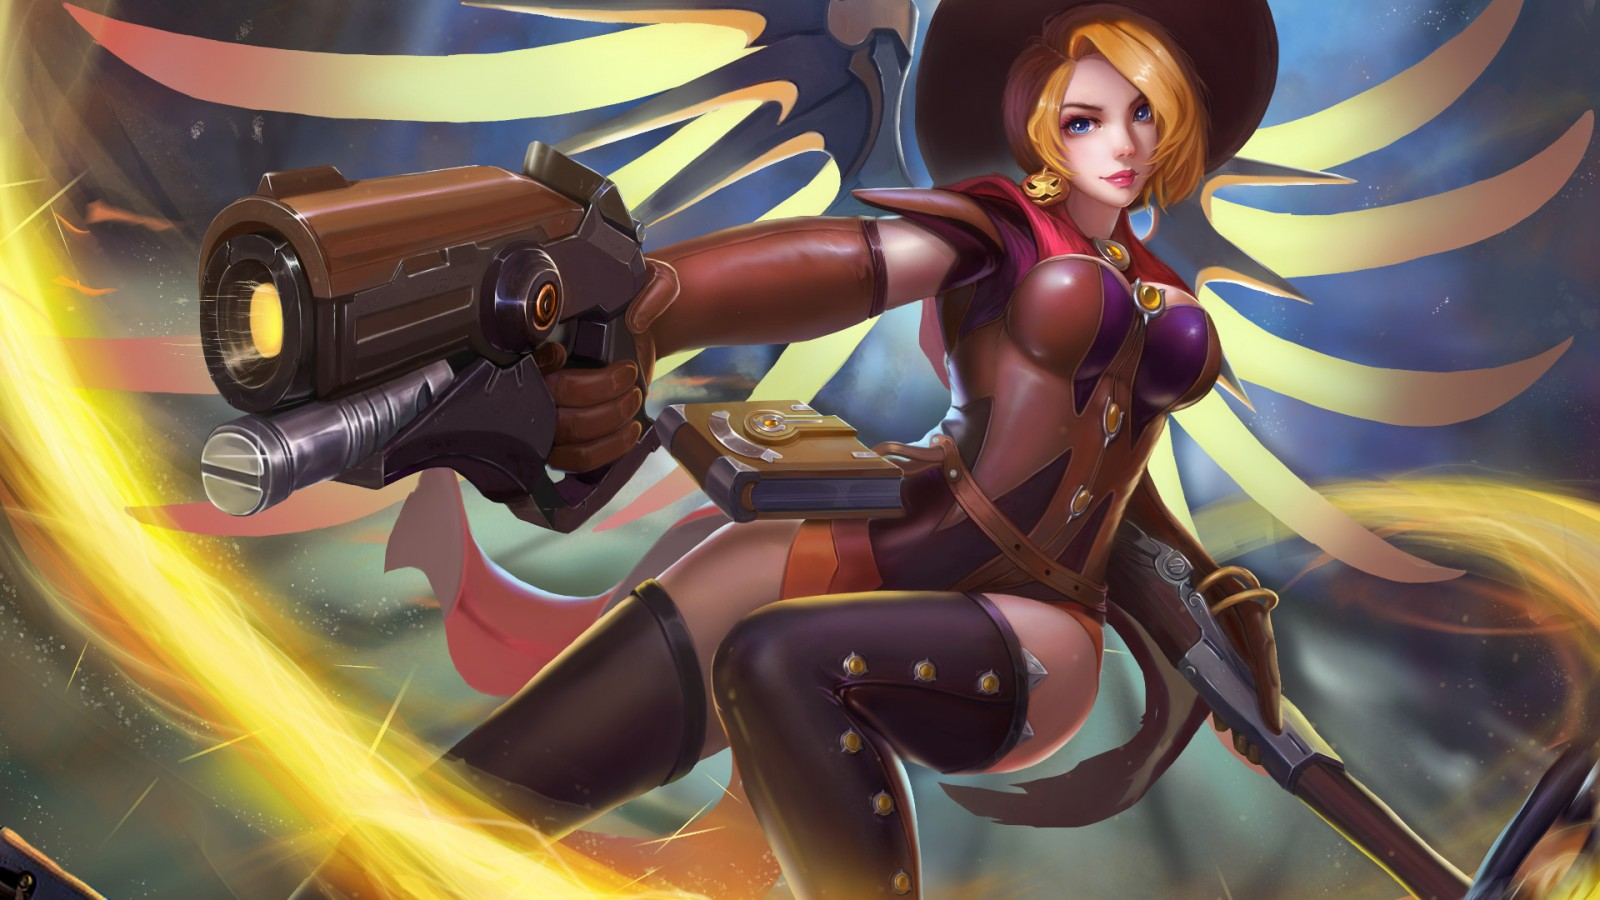 Windows 10 Wallpaper For Girls Witch Mercy Overwatch Wallpapers Hd Wallpapers Id 22784